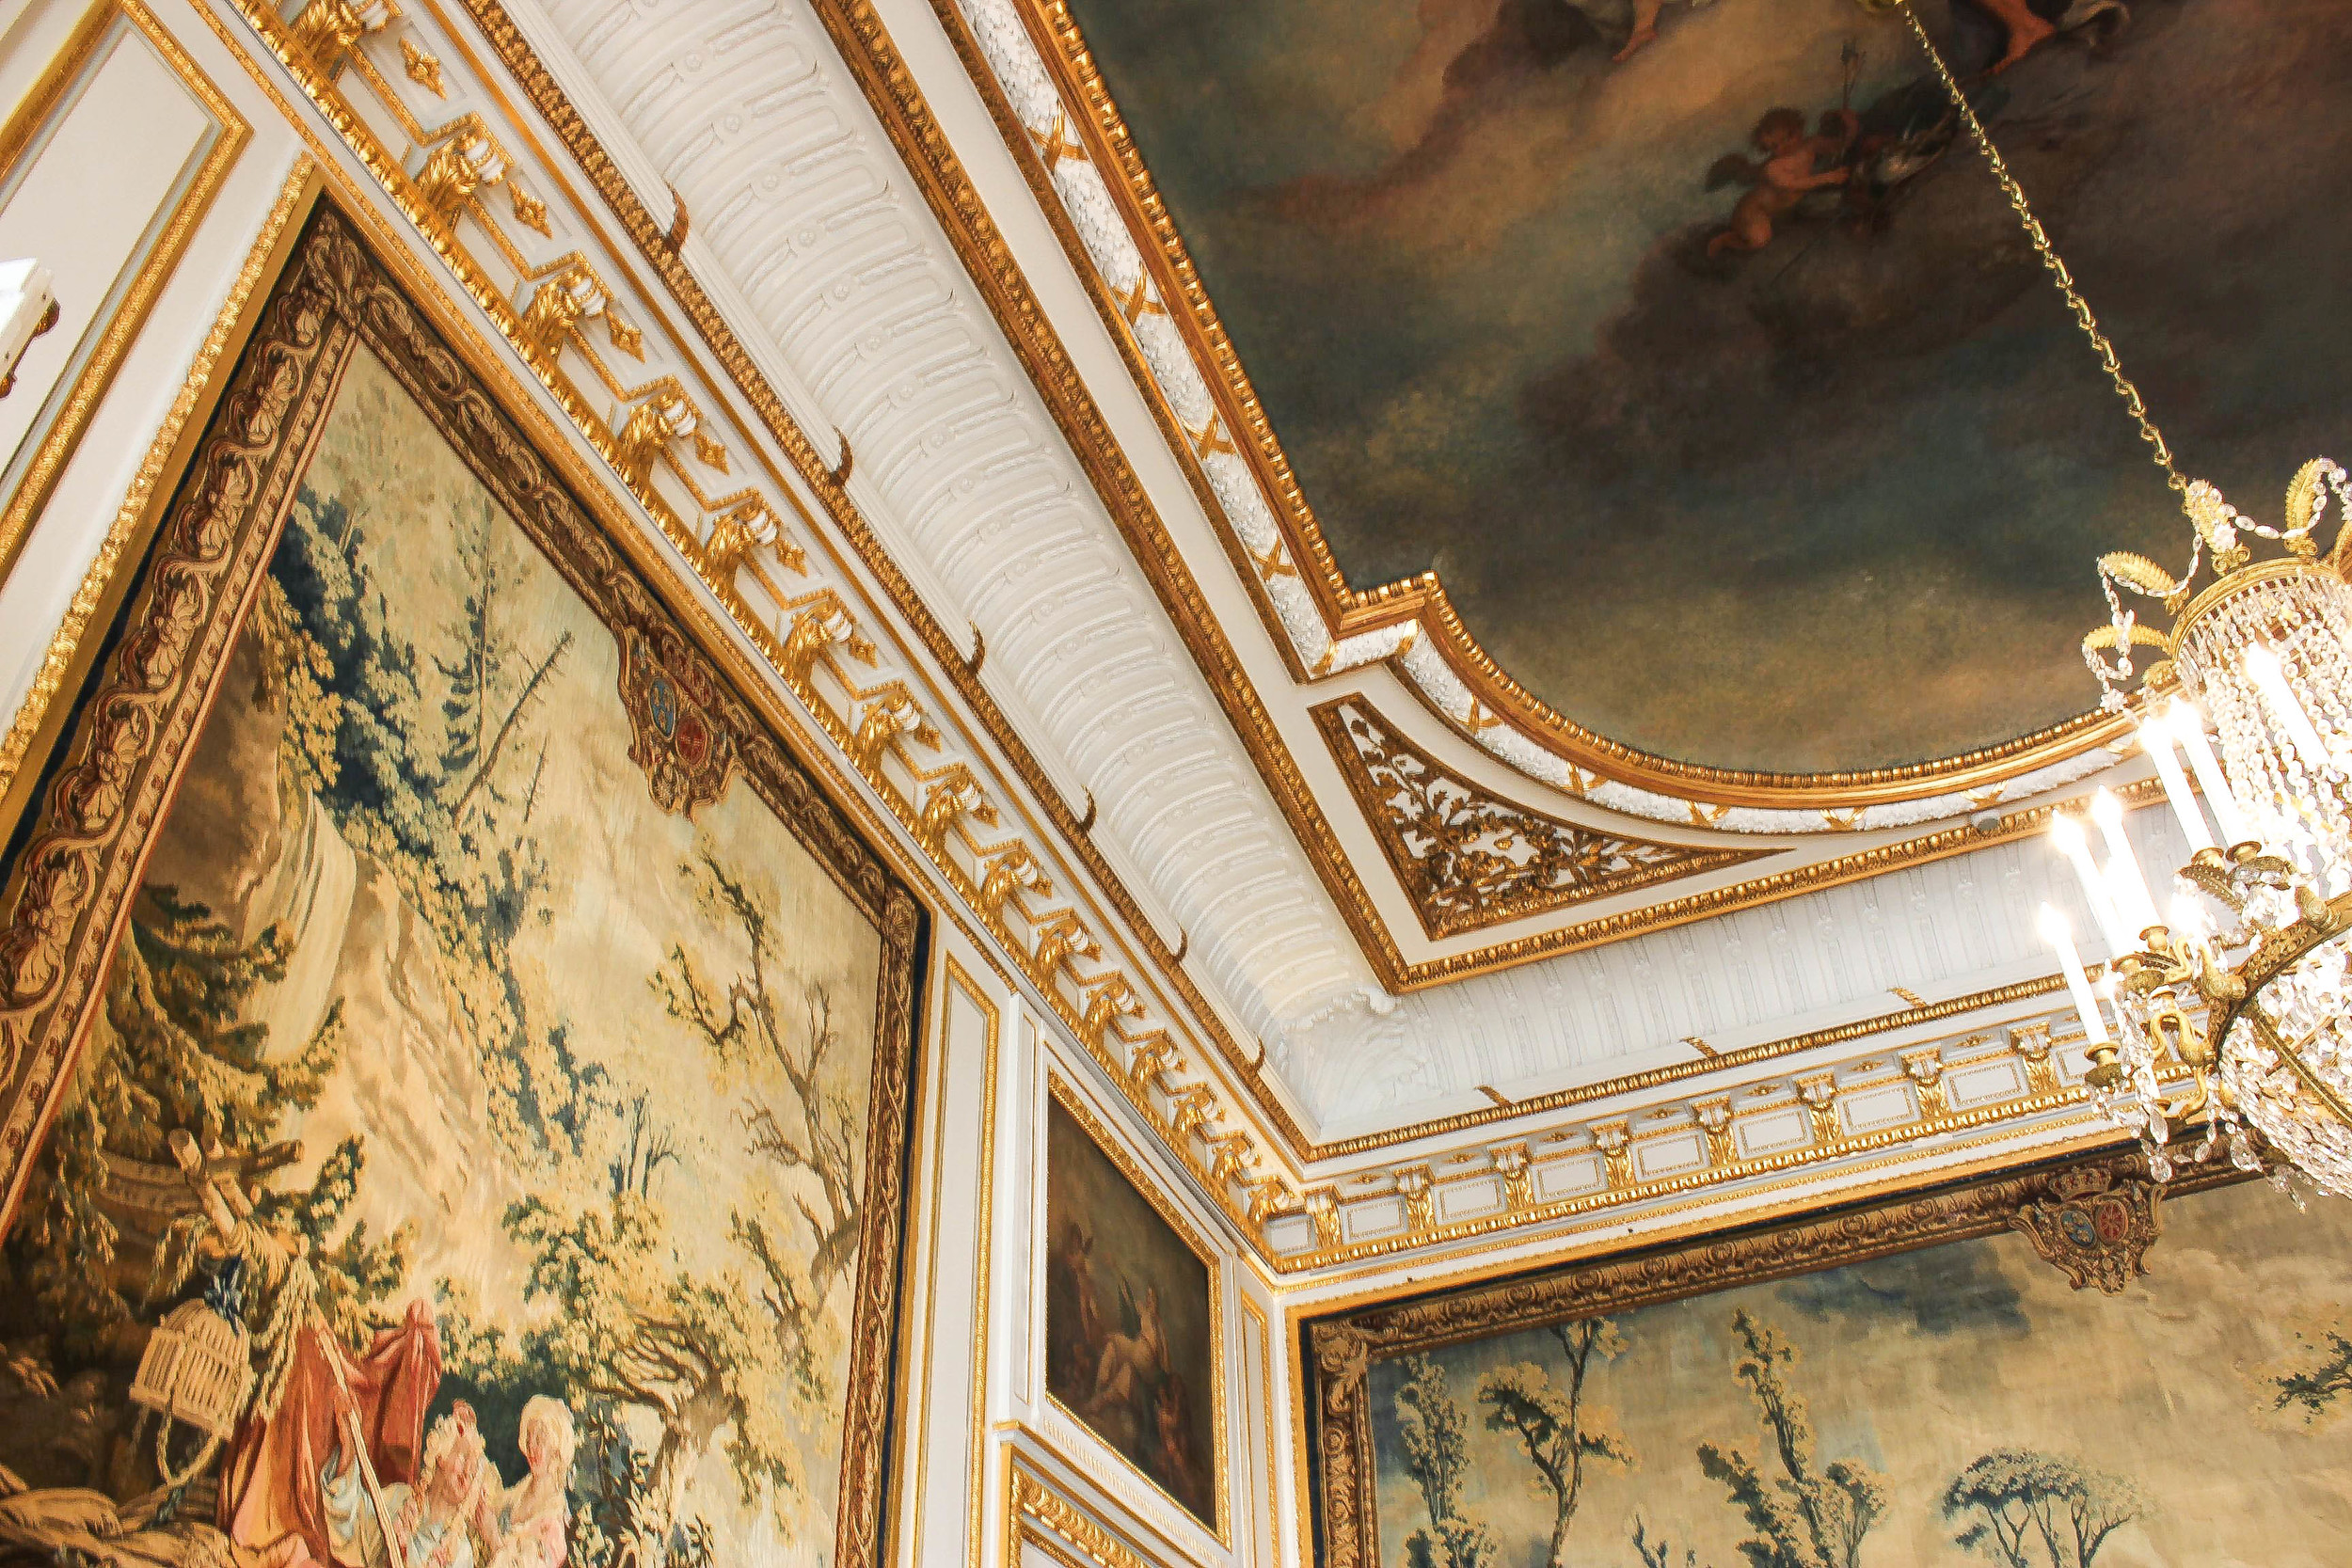 details on the ceiling of the Salon